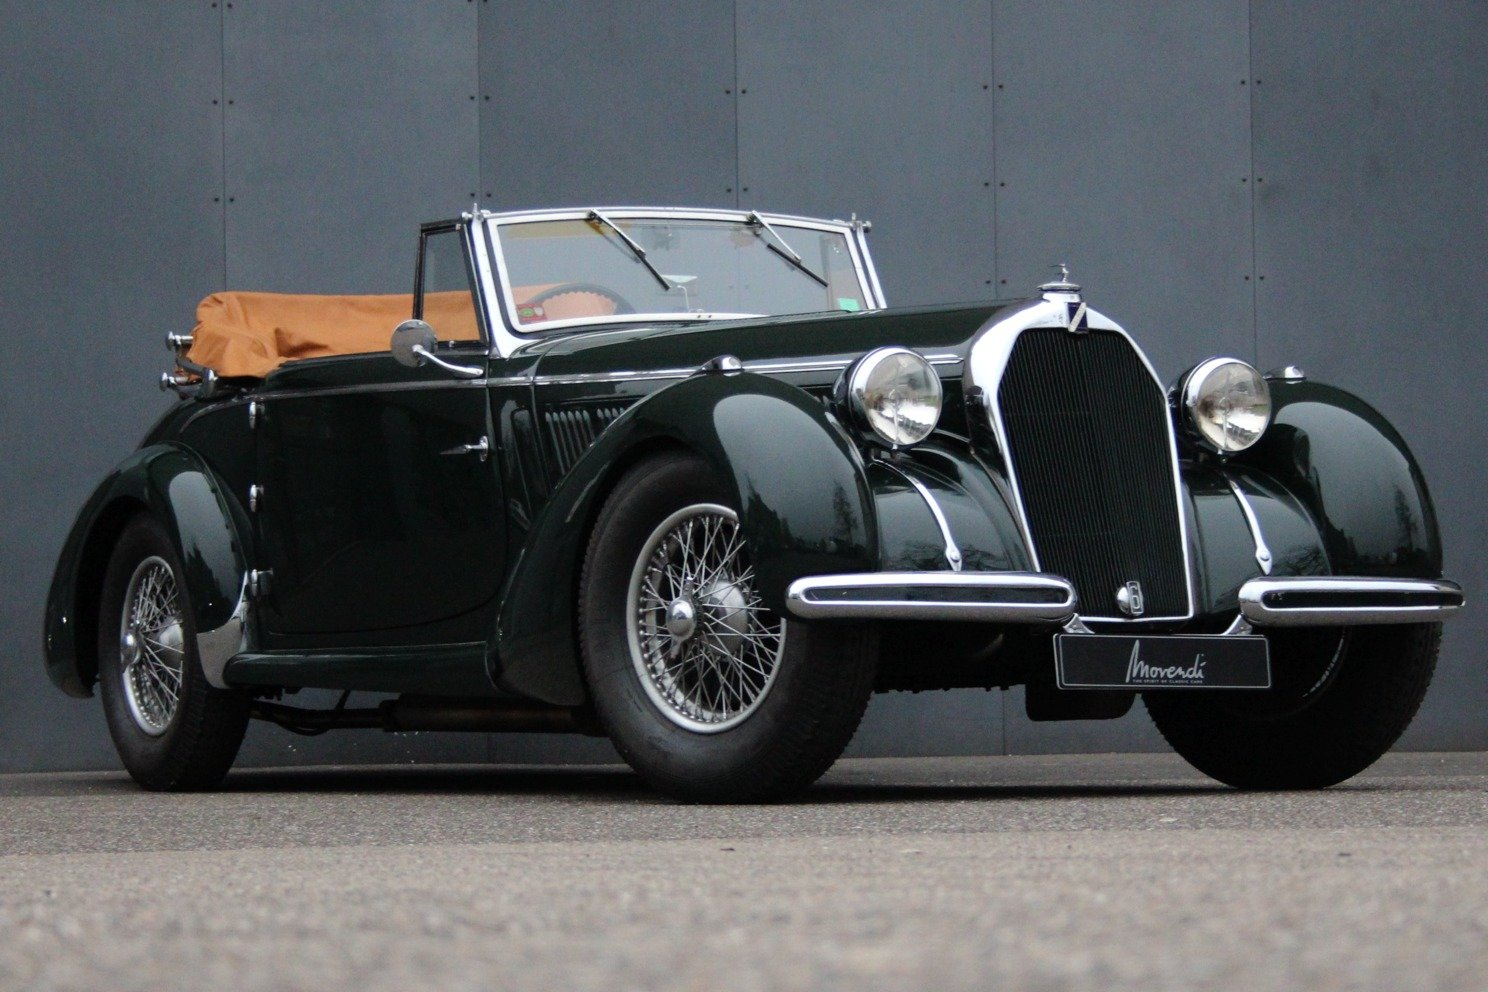 1937 Talbot Lago T150 S Lago Spéciale RHD For Sale (picture 1 of 6)